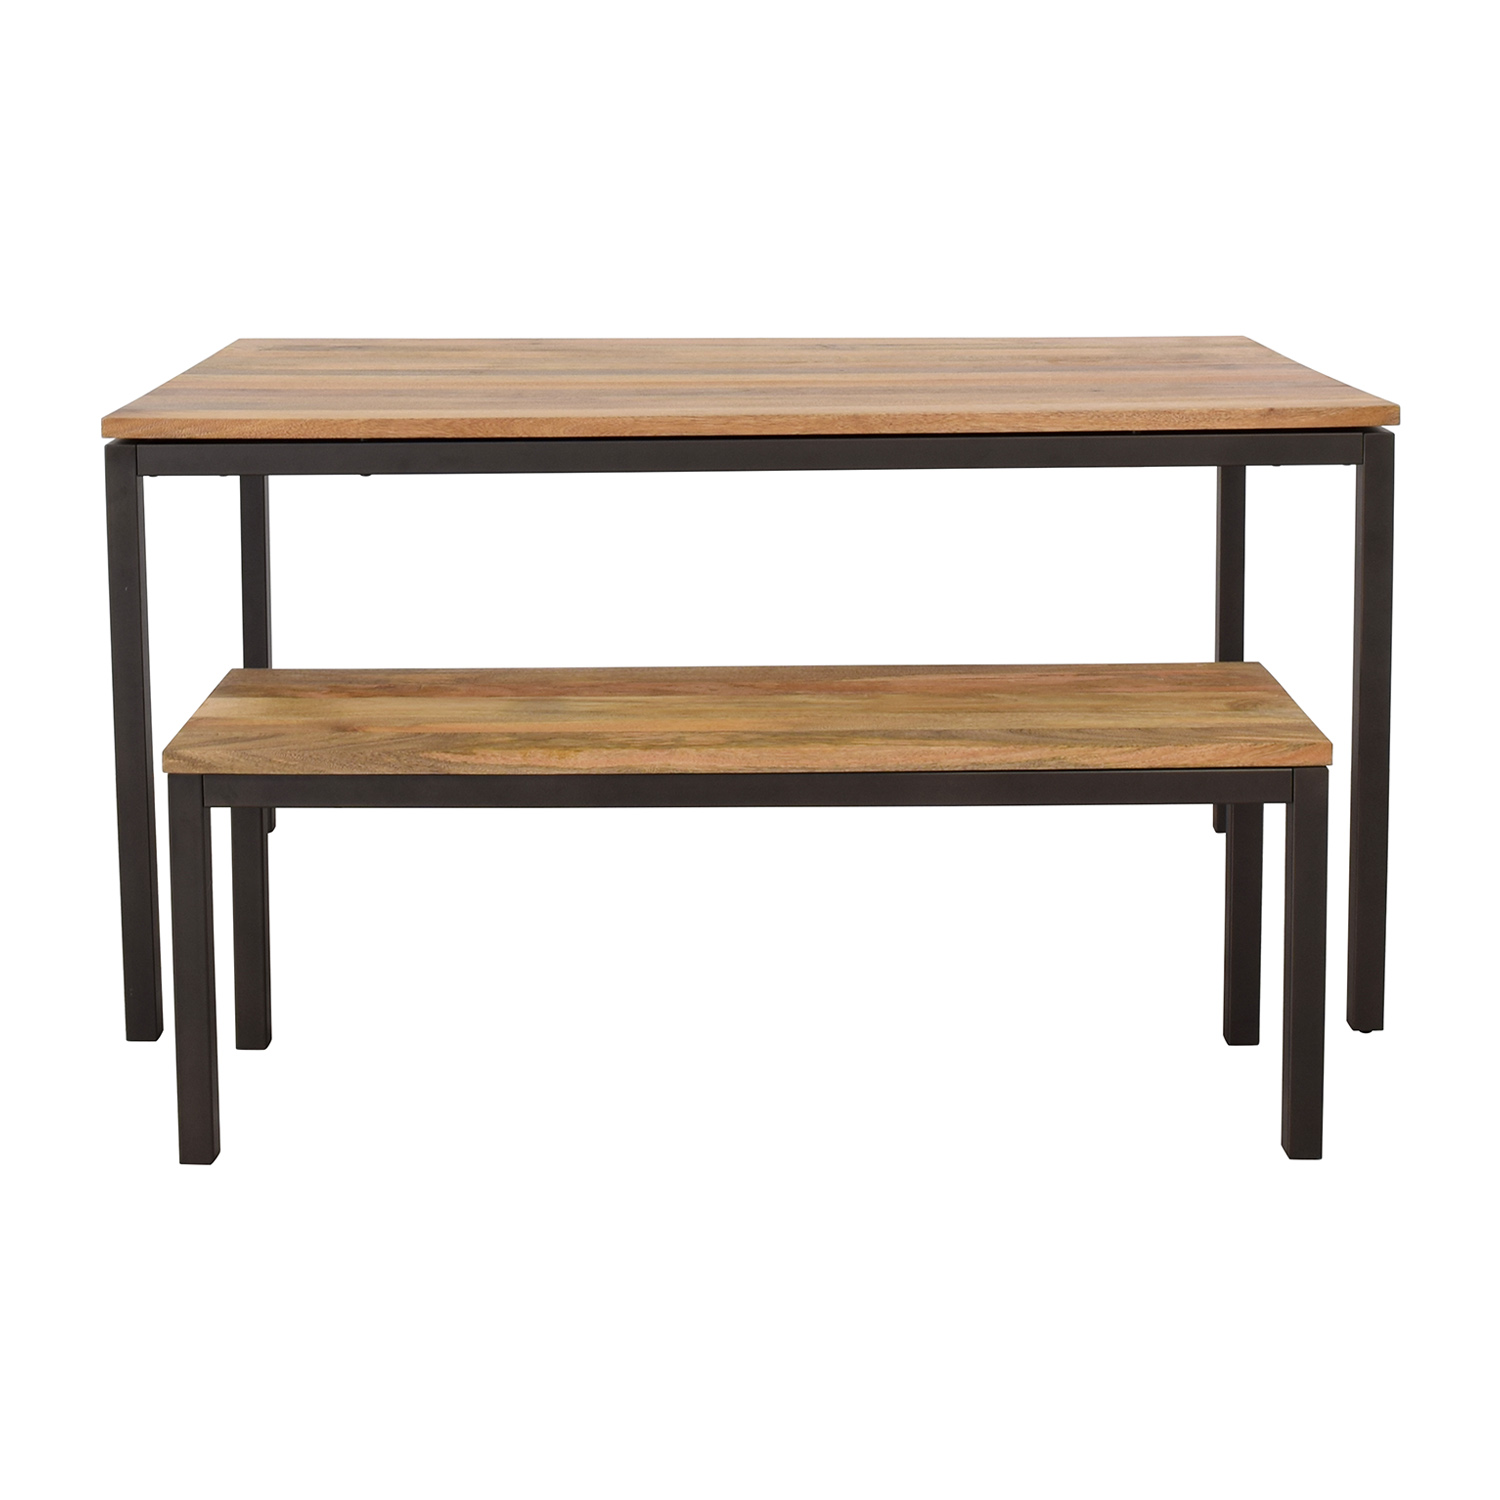 West Elm West Elm Dining Table and Bench nj